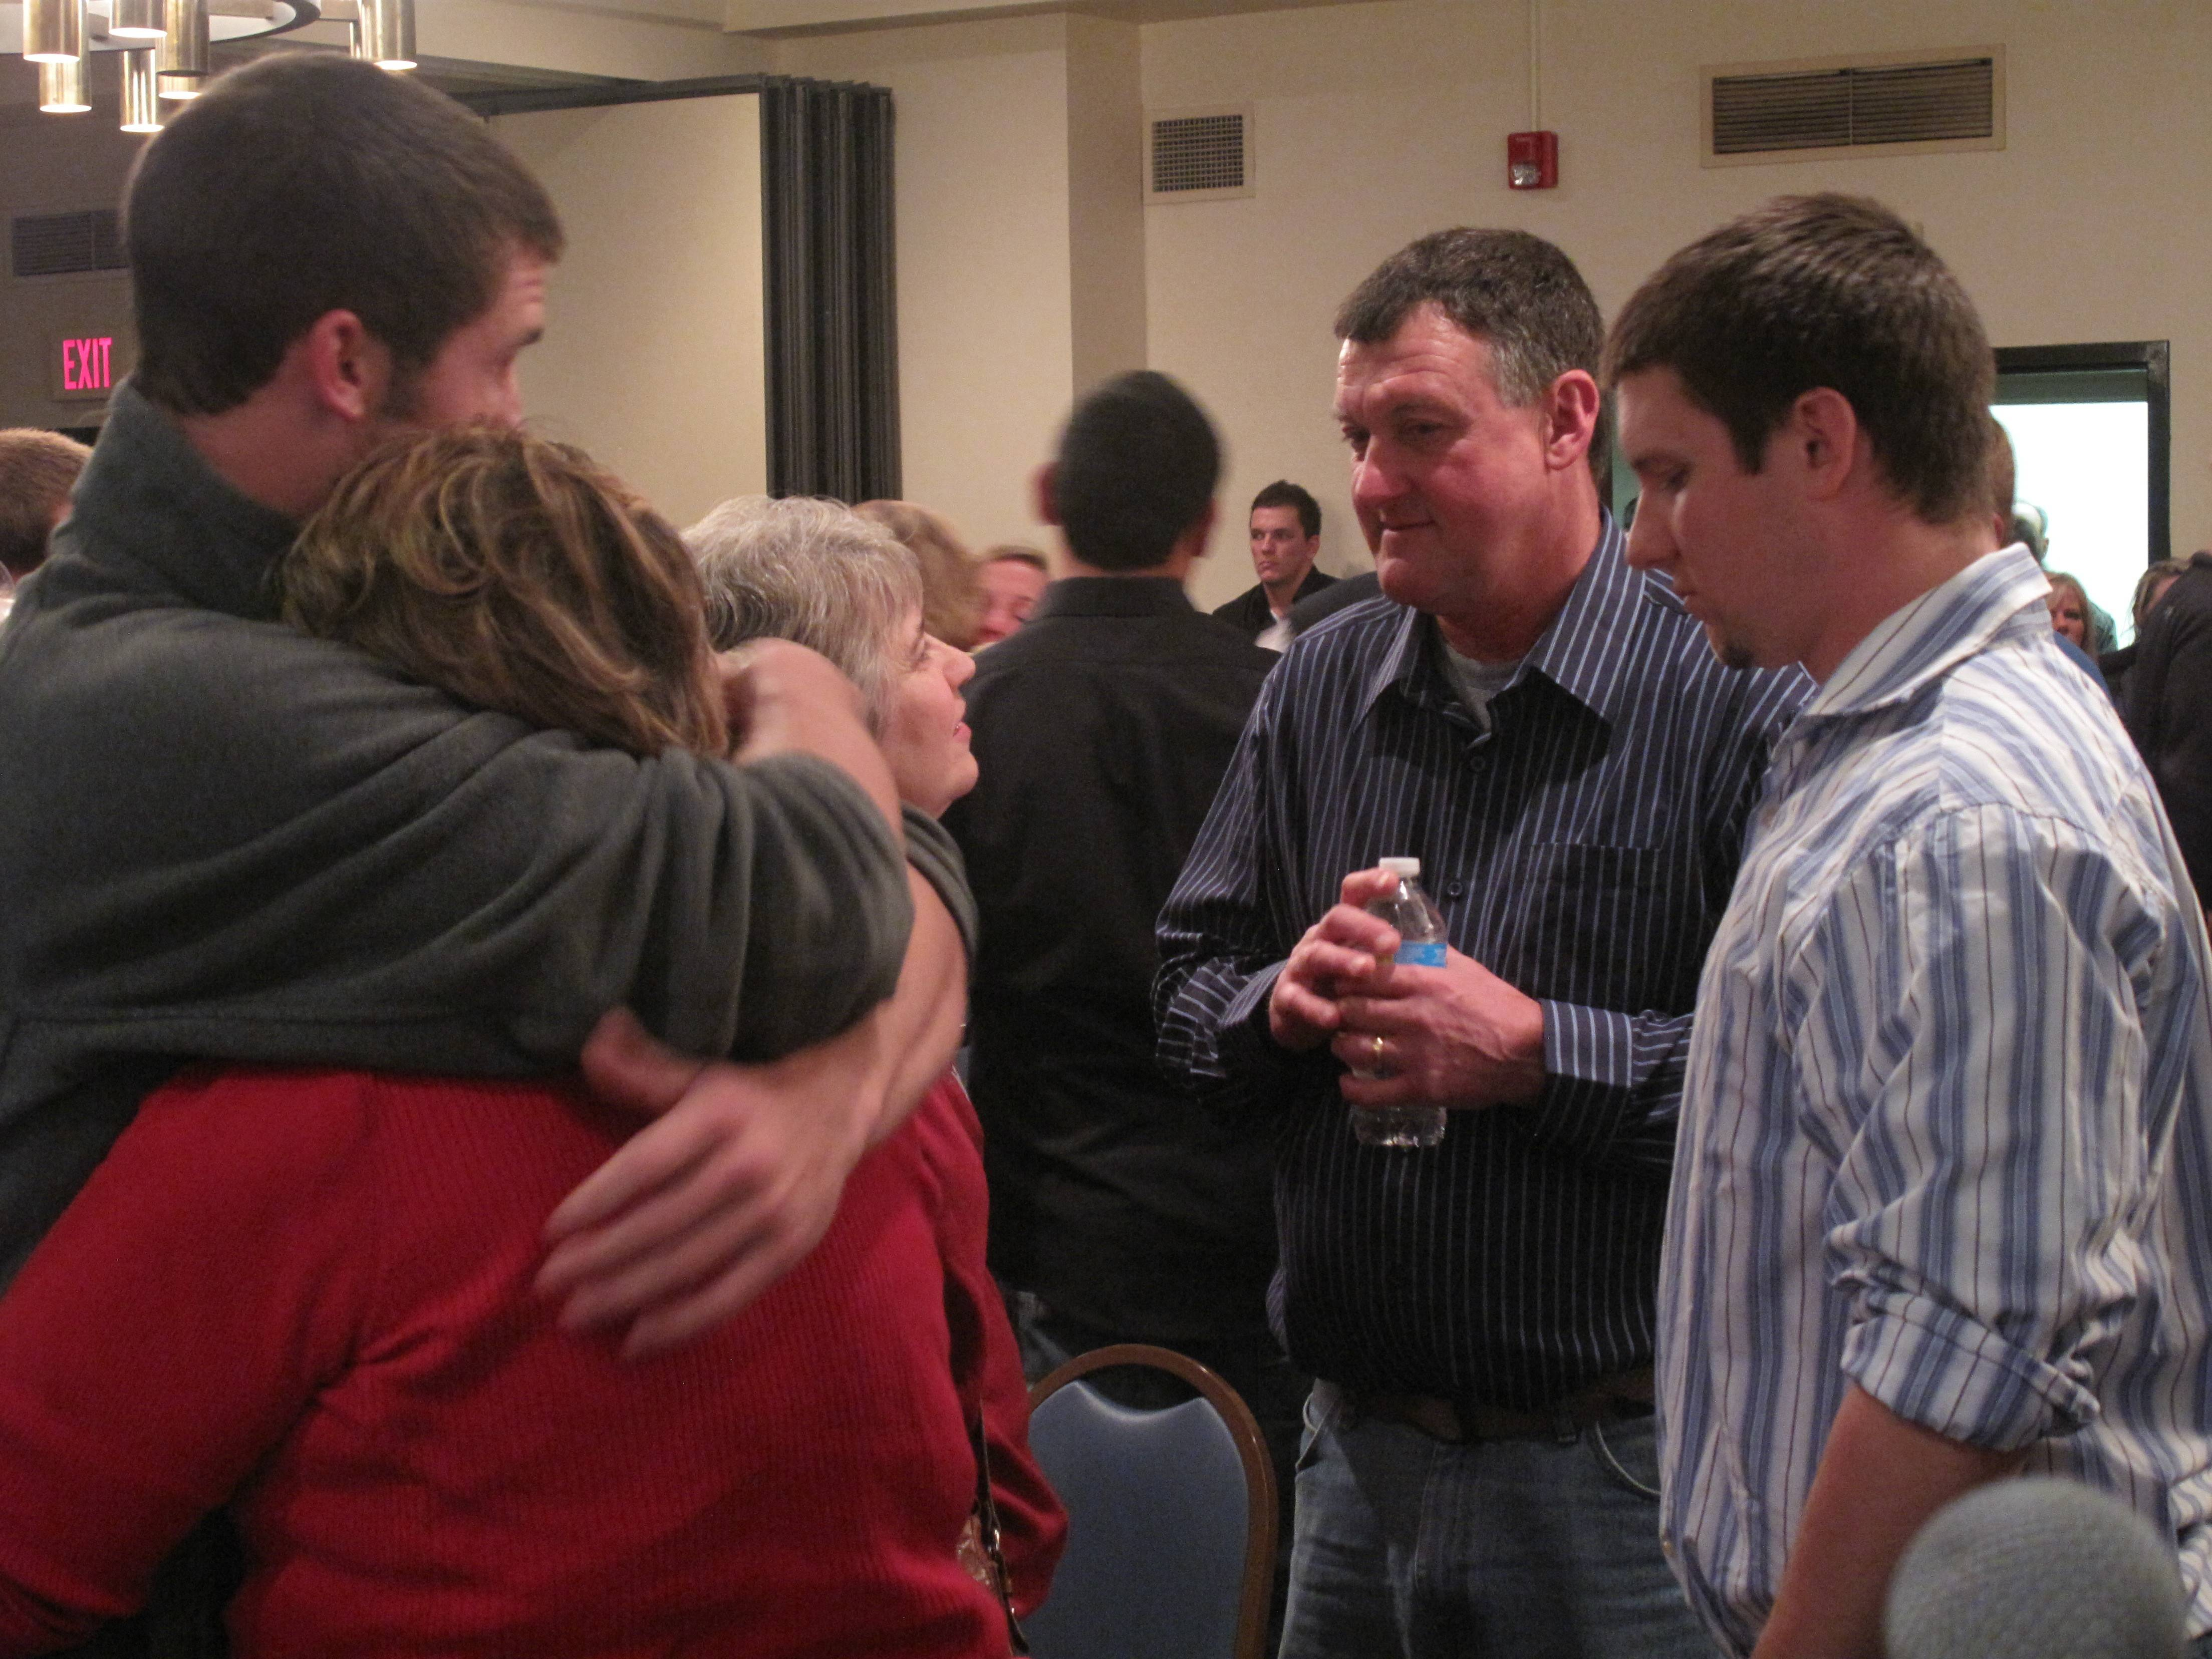 Shaun Wild's parents, Jami, being hugged at left, and Bruce Wild, center, attended a community gathering at Naperville's North Central College the night after Shaun's death.